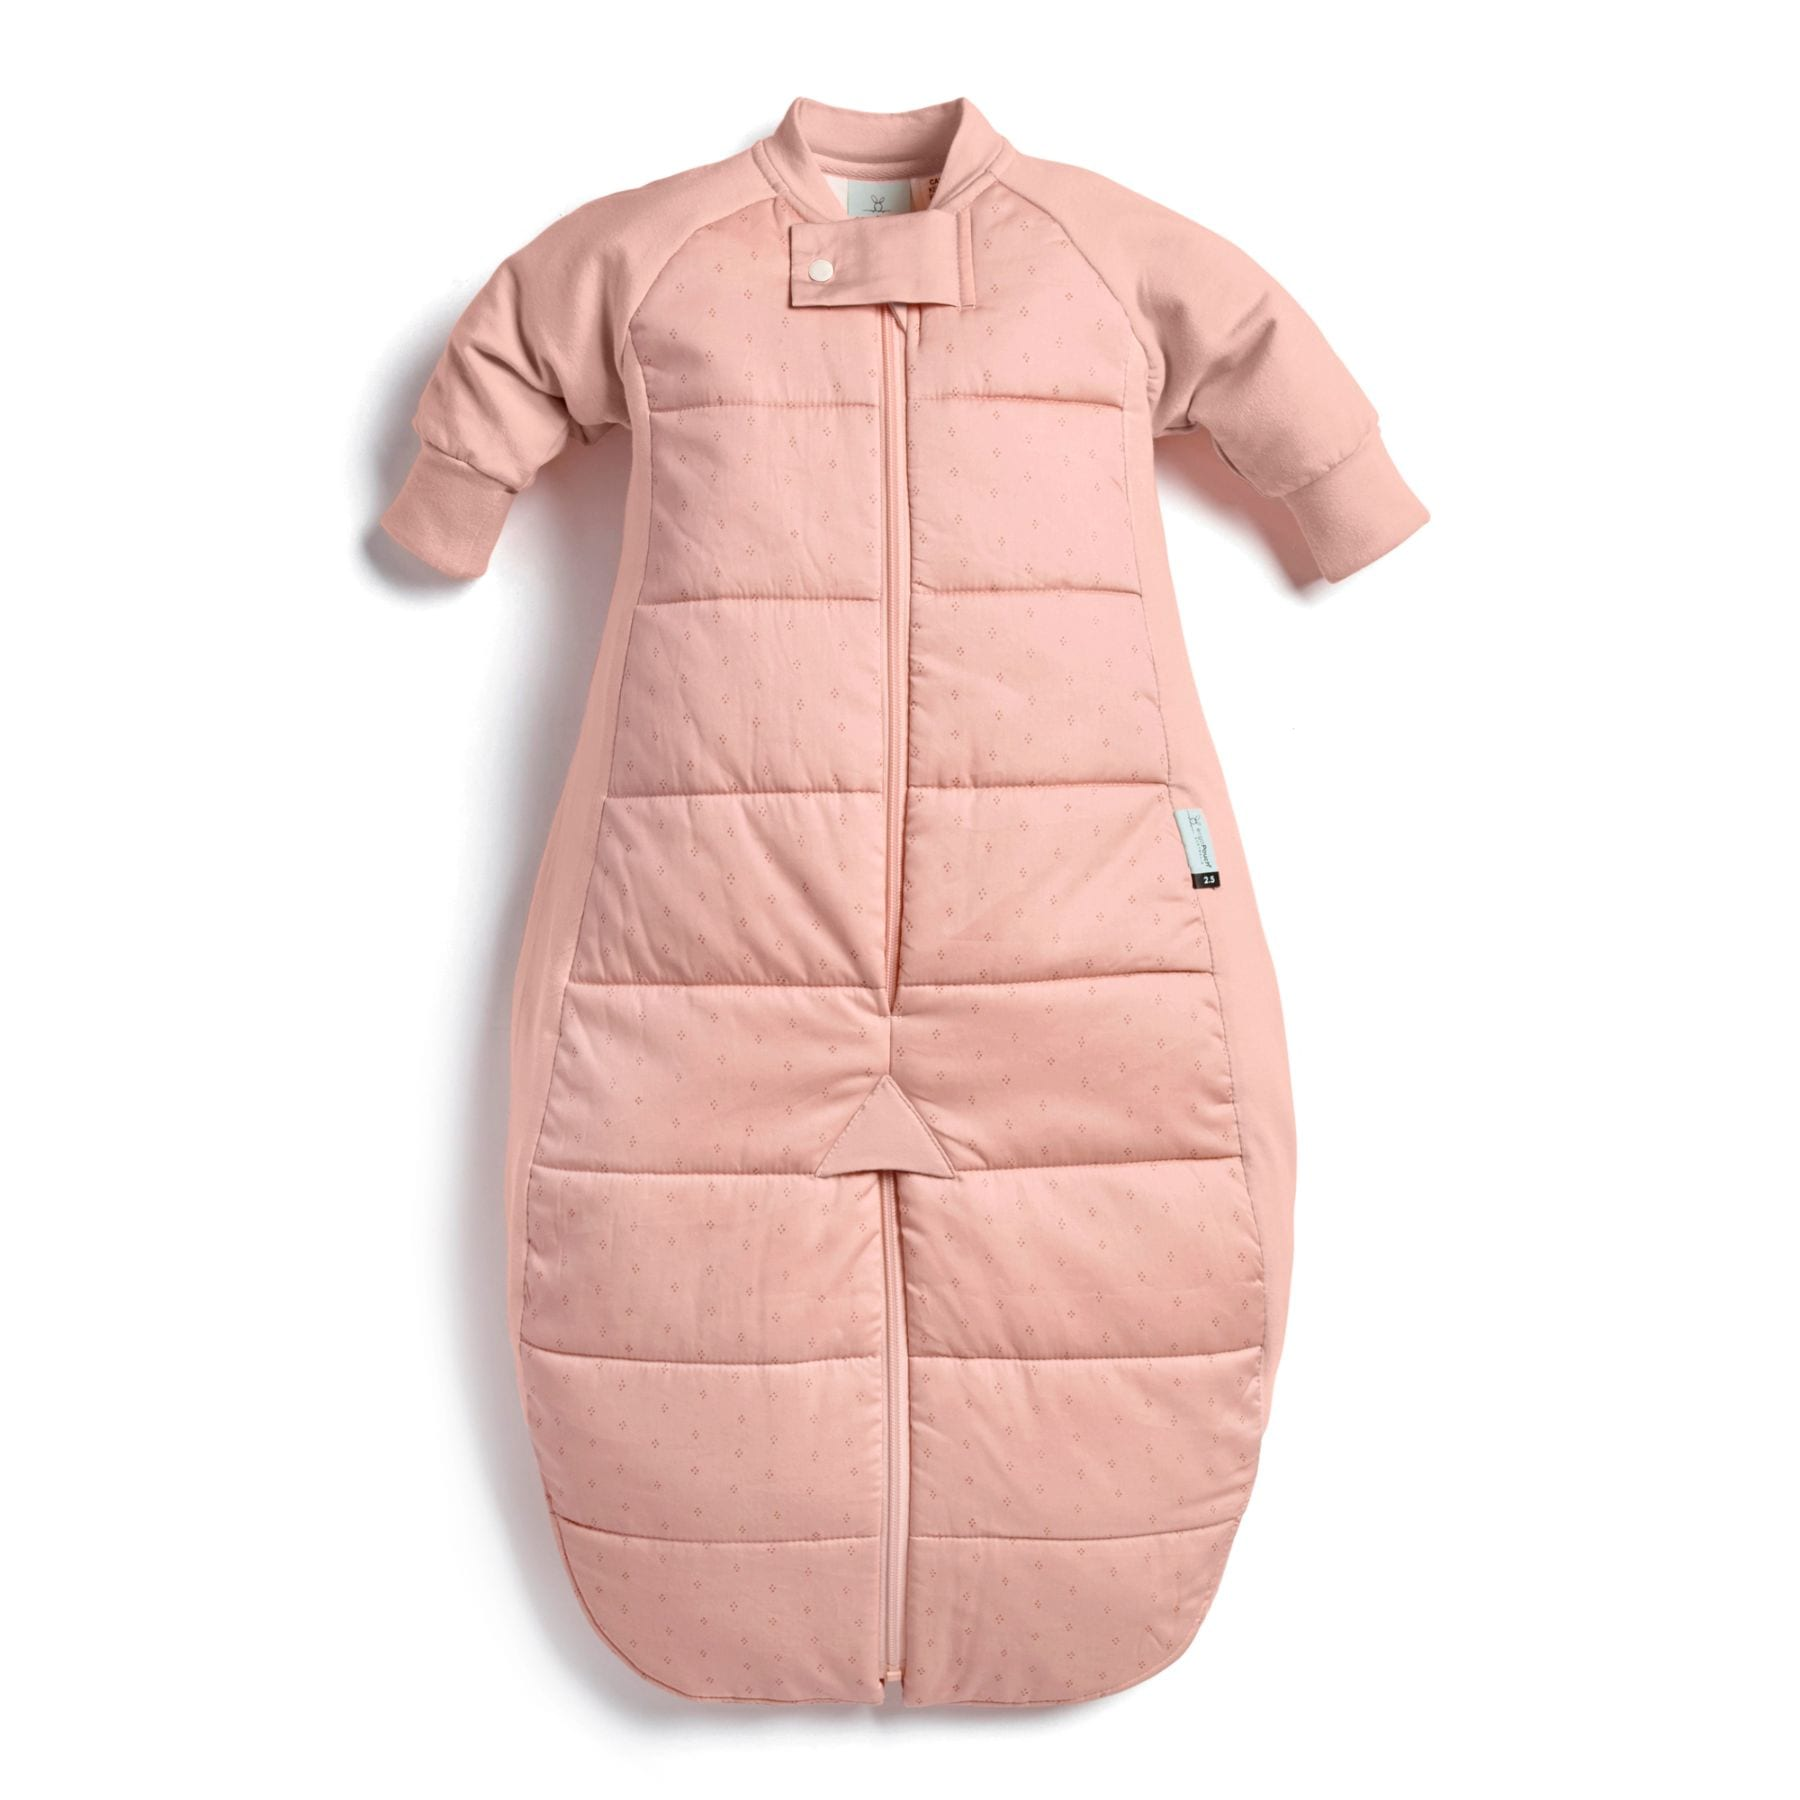 Ergopouch 2.5 TOG Sleep Suit Bag - Berries